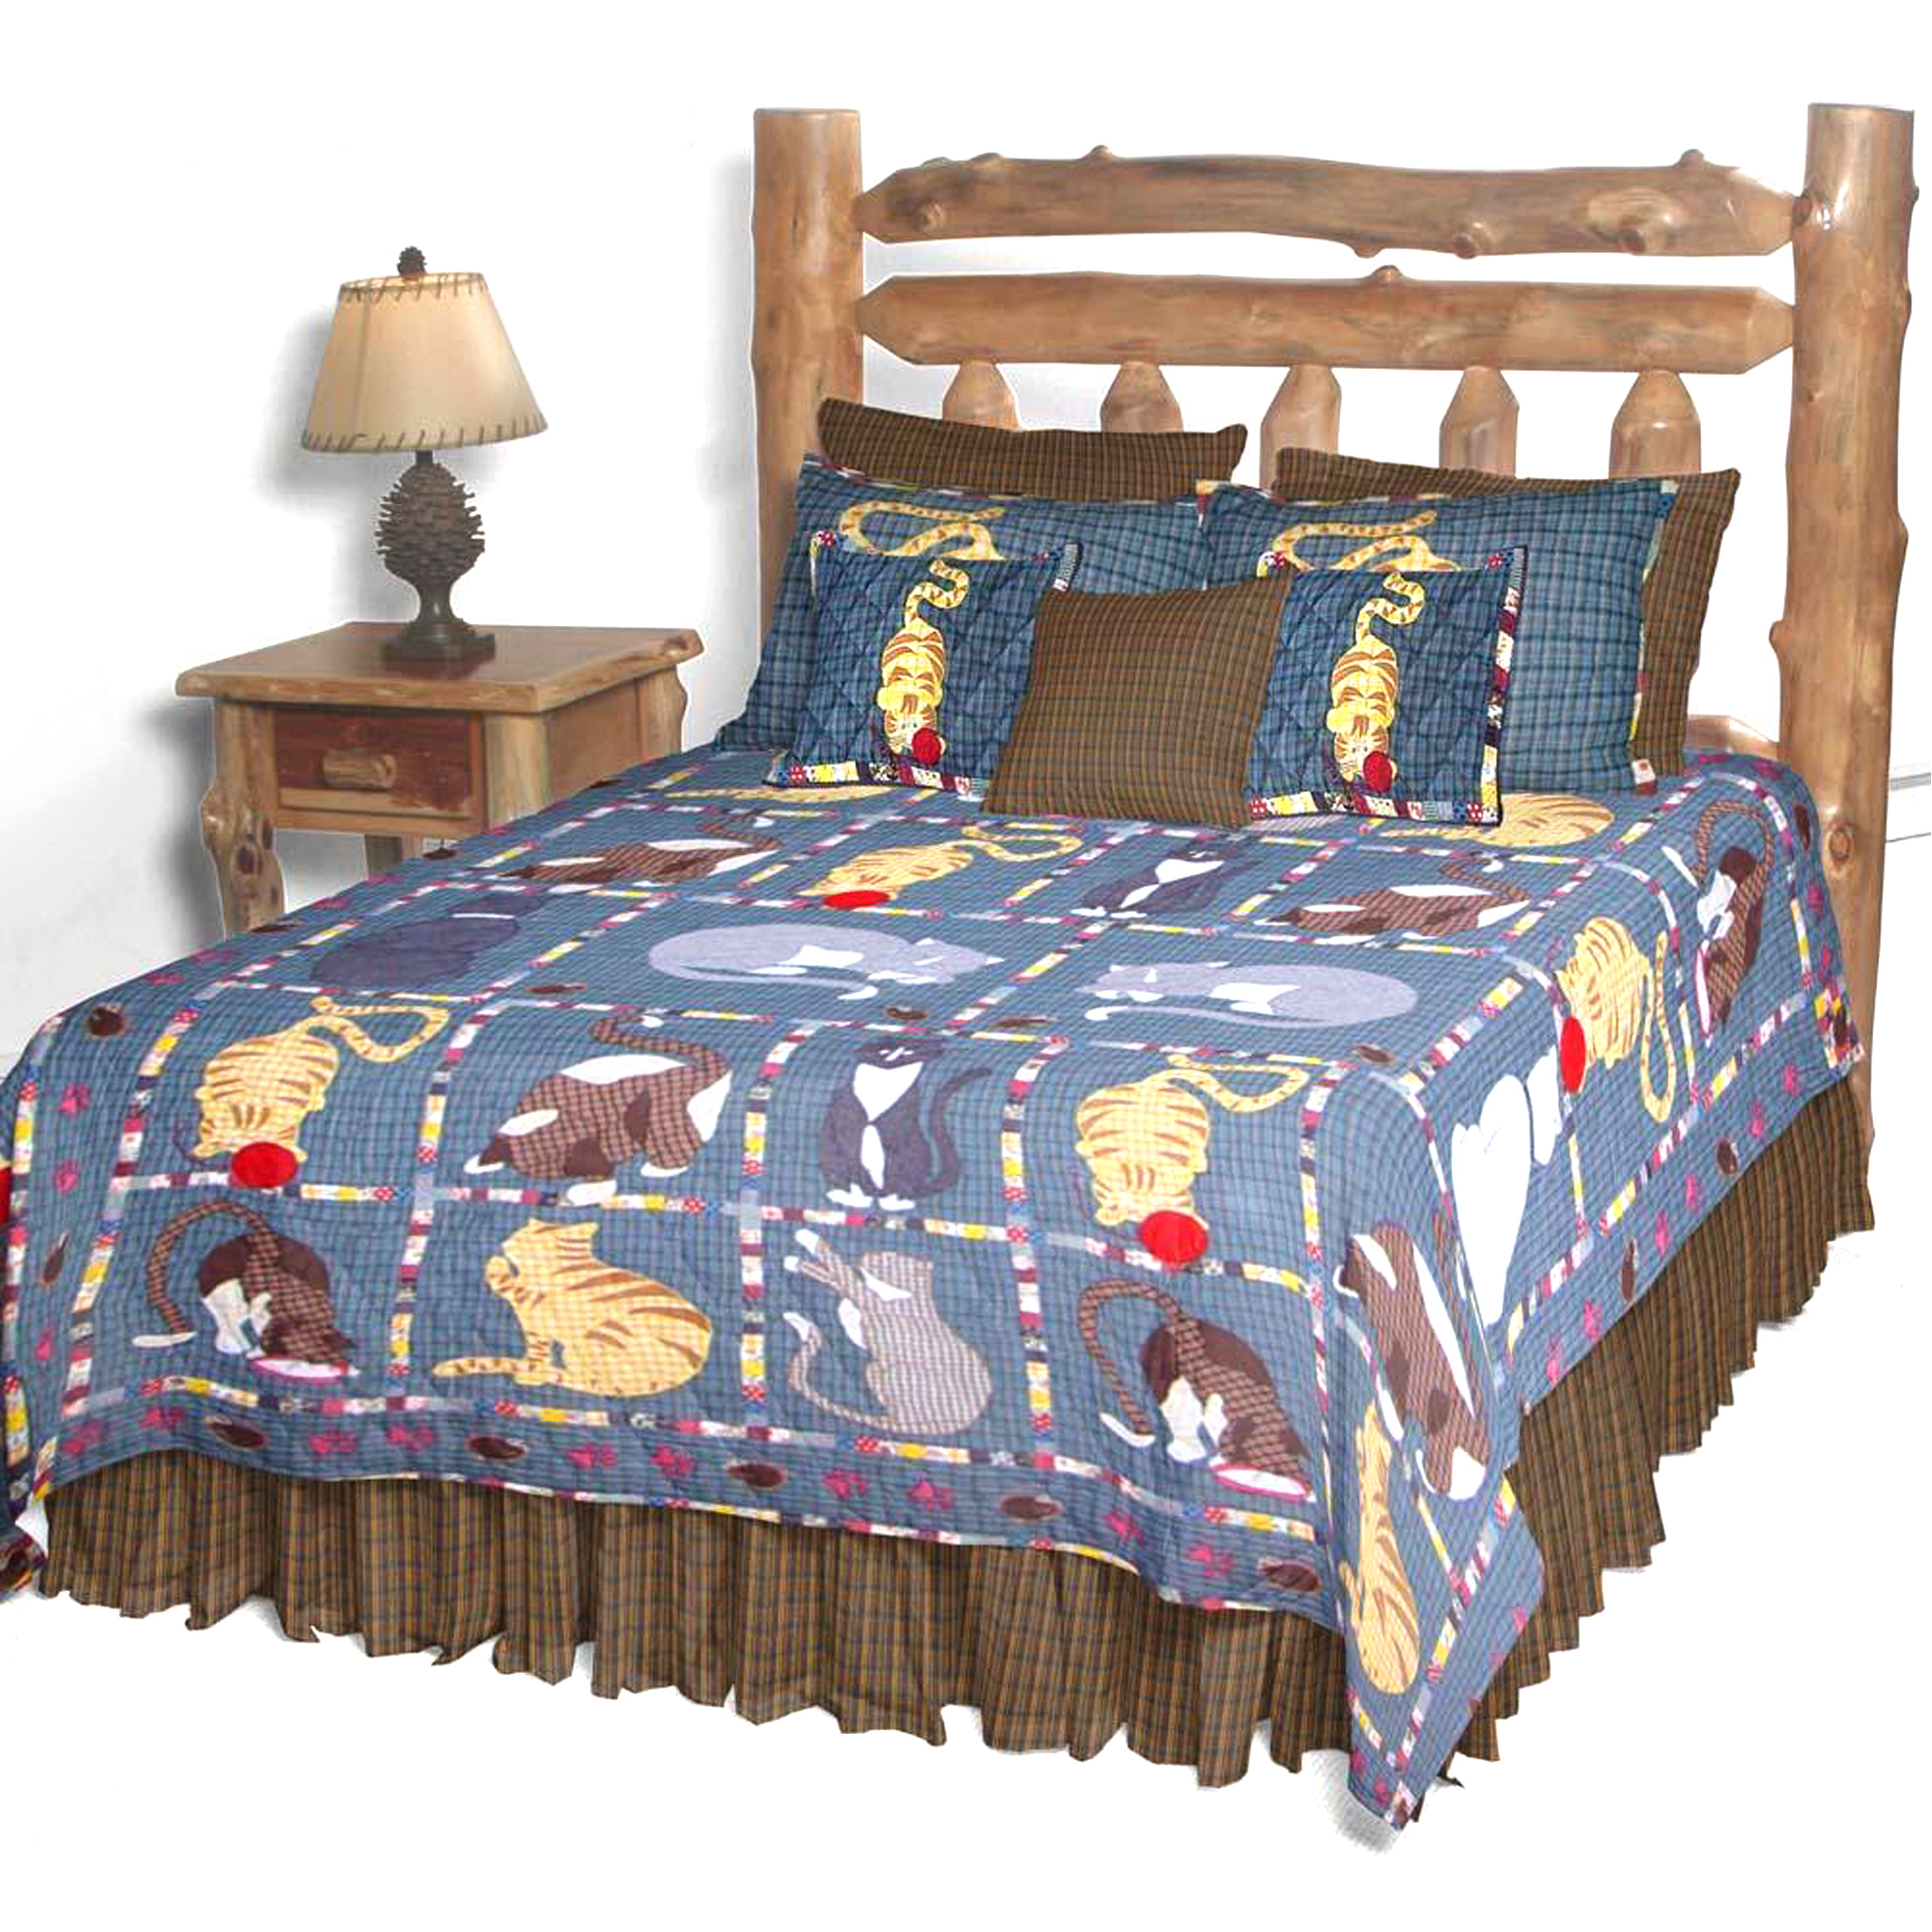 "Kitty Cats Queen Quilt 85""W x 95""L"